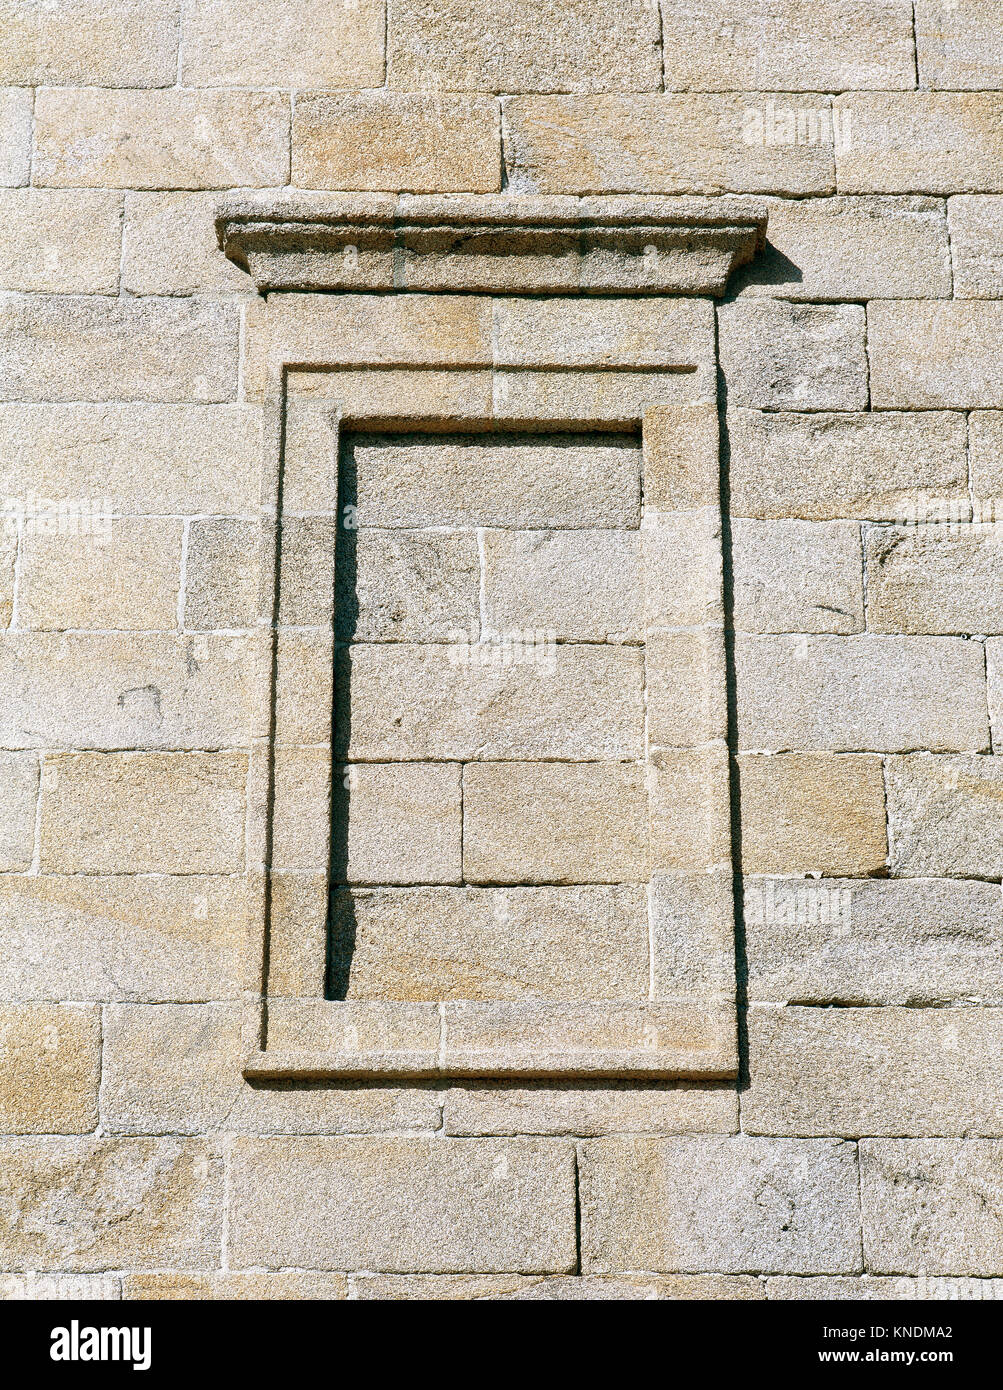 Tower of Hercules. 2nd century AD. Ancient Roman lighthouse. Restored in 1791 by Eustaqui Giannini. Detail window. - Stock Image